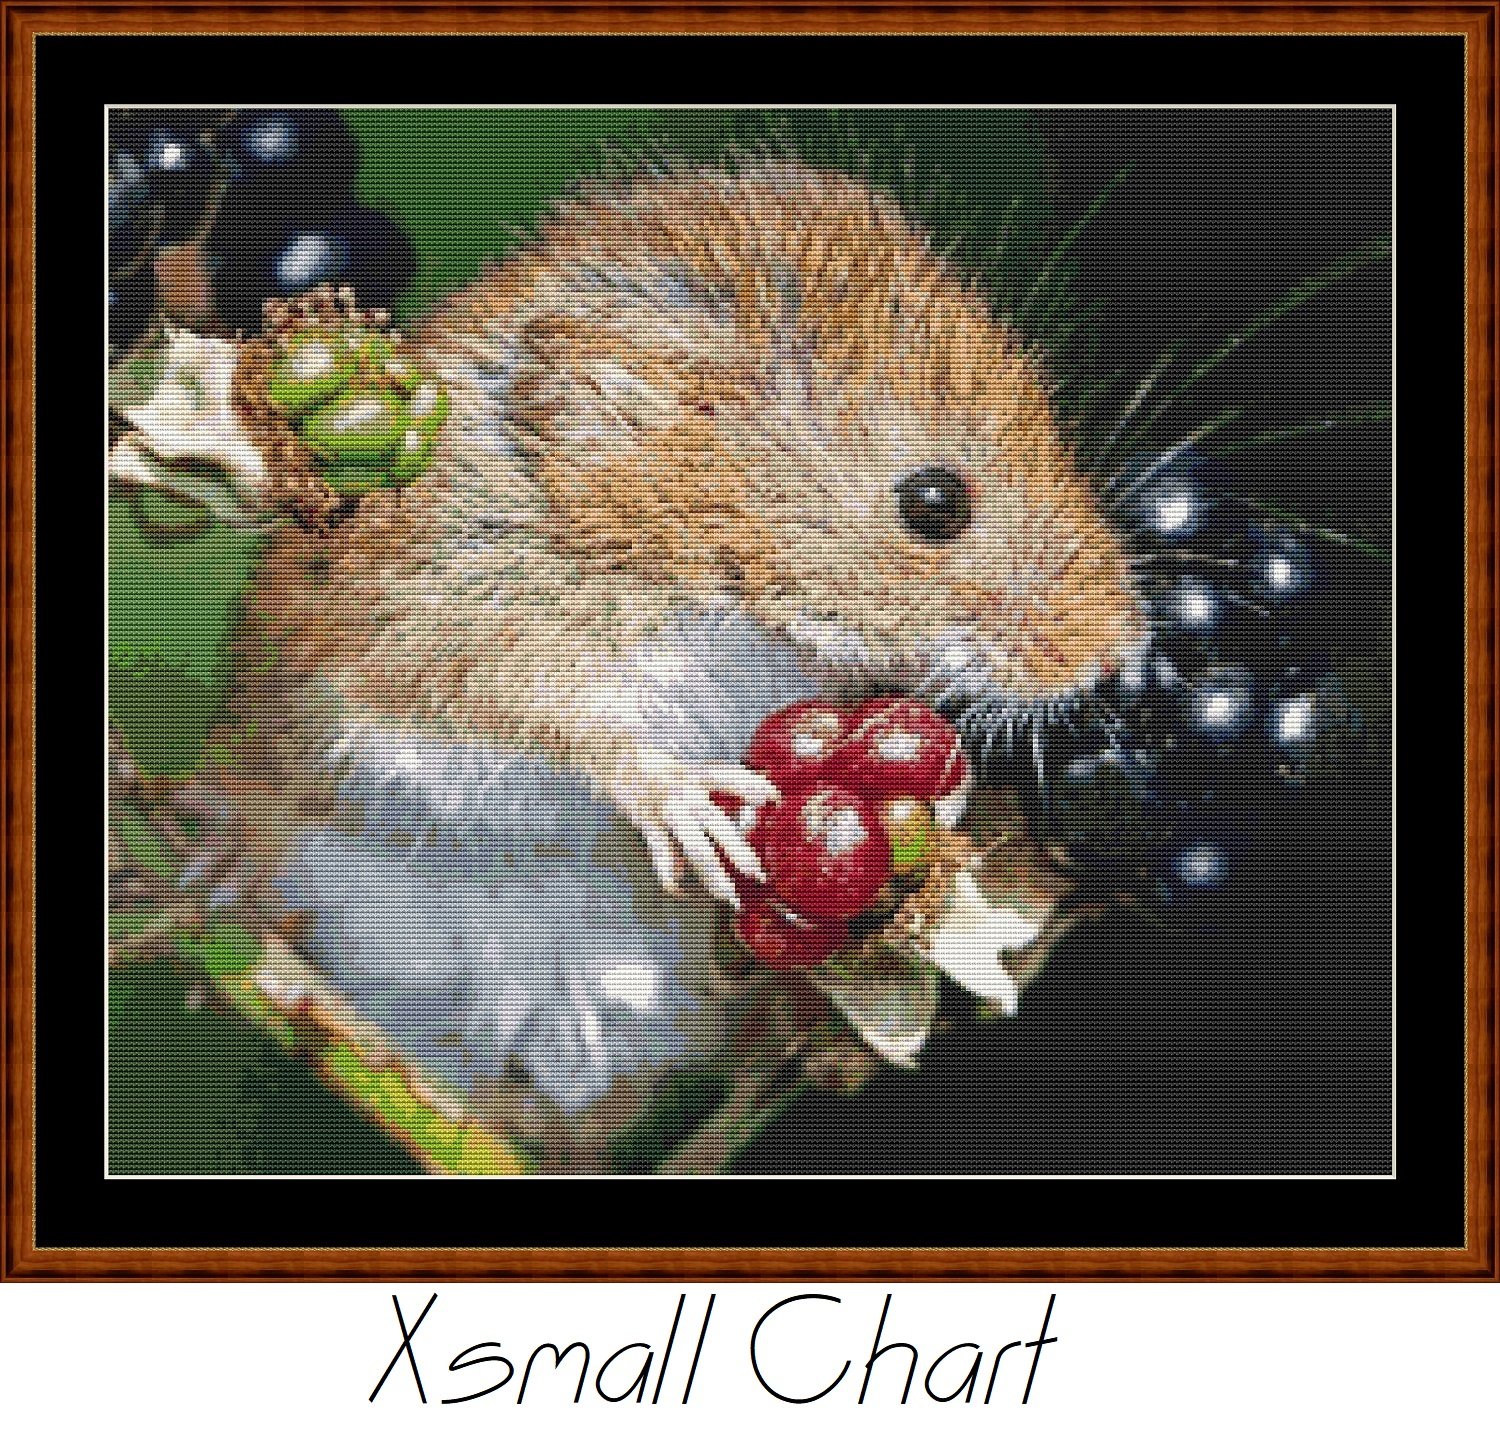 Harvest Mouse Cross Stitch